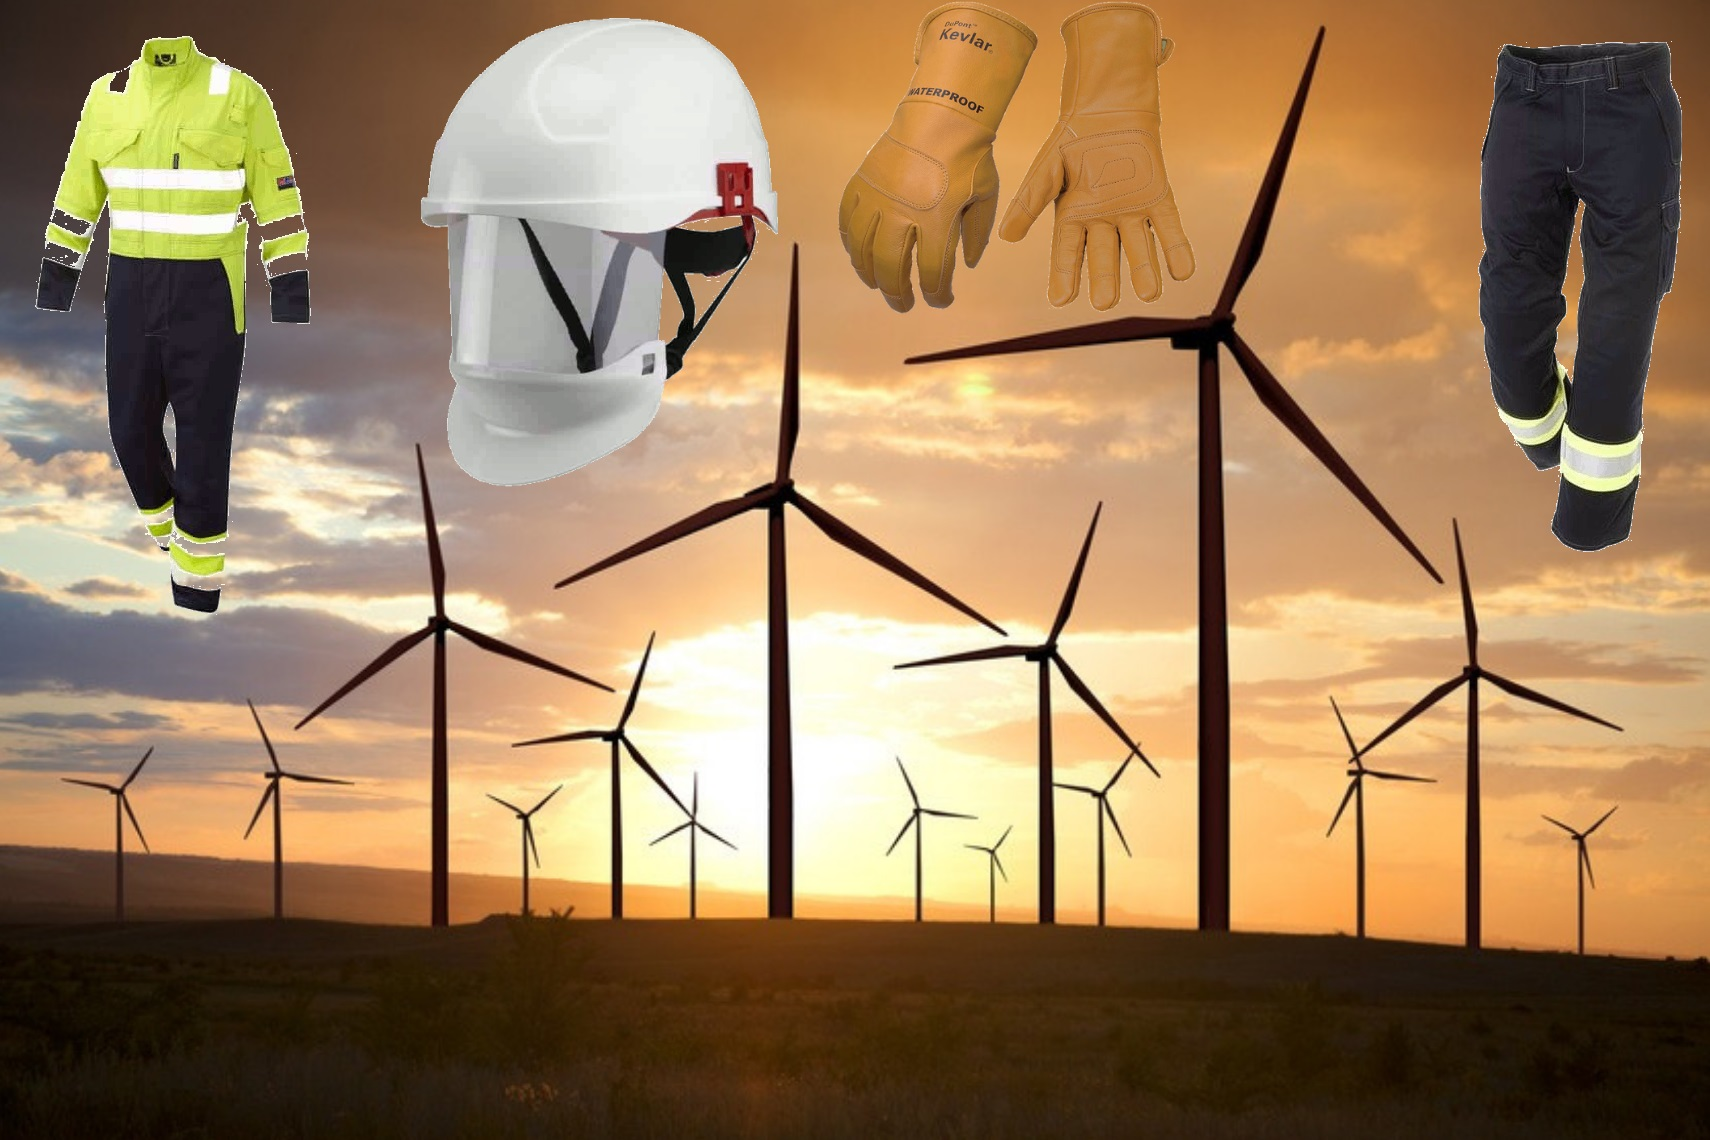 Arc Flash Risks & How To Prevent Them - Wind Turbines & Windfarms